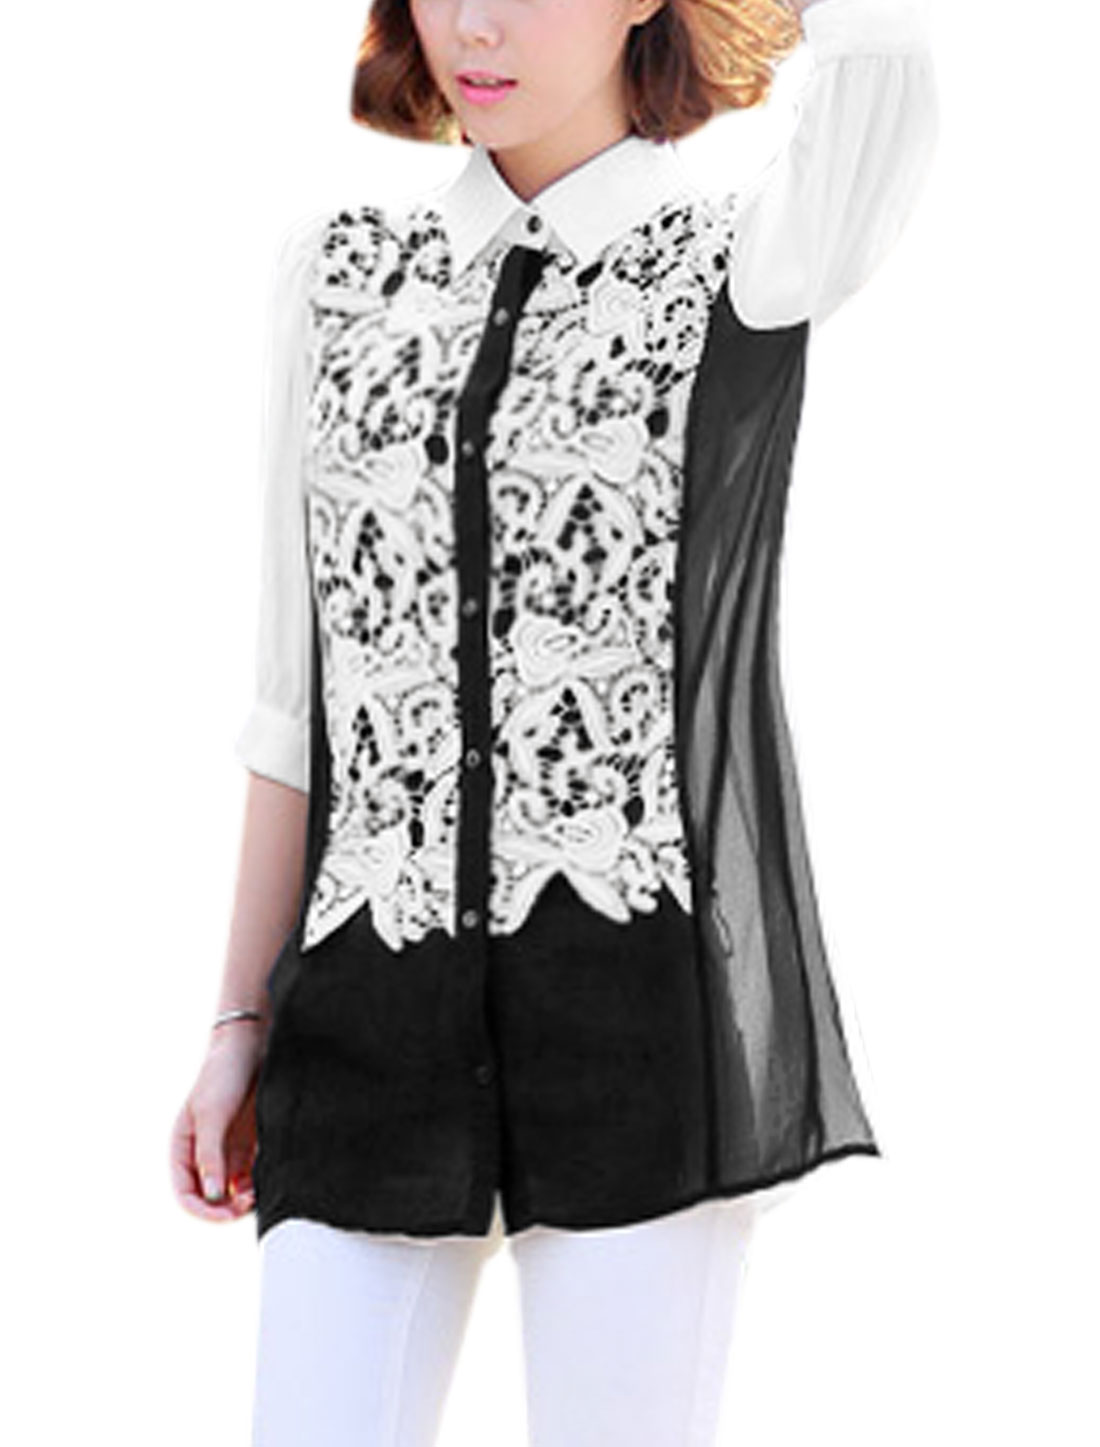 Women 3/4 Sleeves Crochet Panel Color Block Chiffon Tunic Shirt White Black M